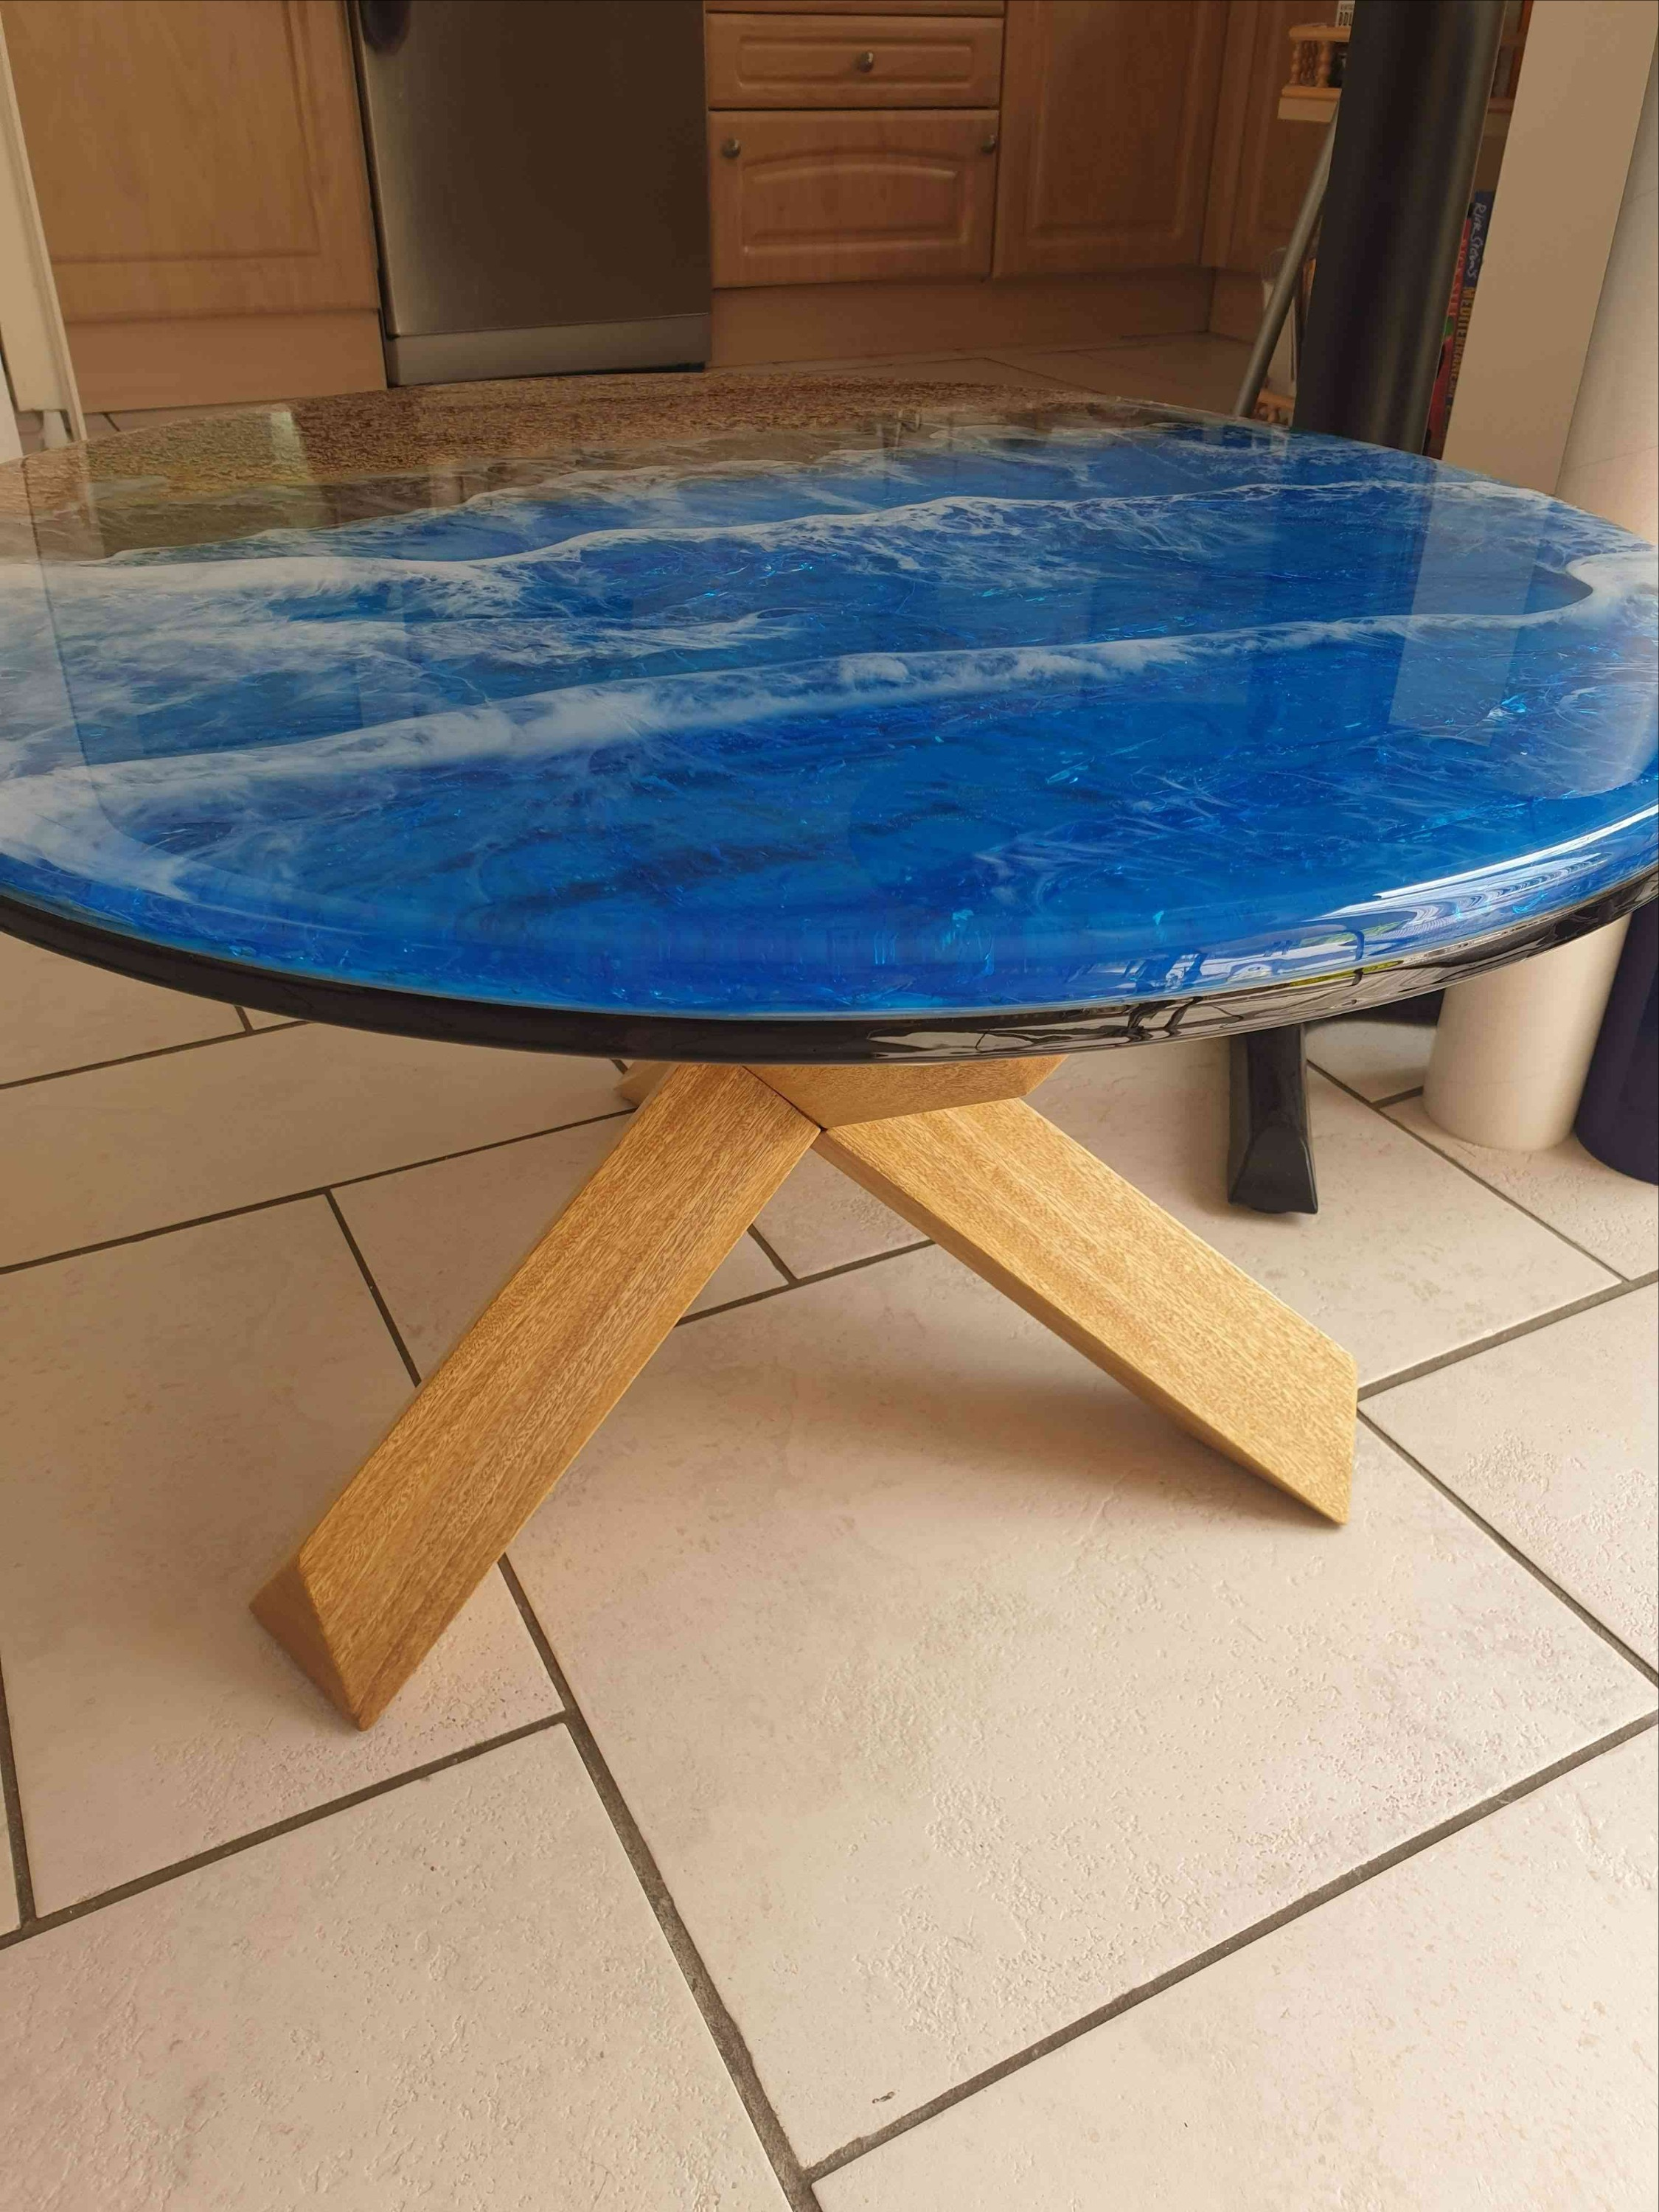 Elysian Designs Ocean concept table